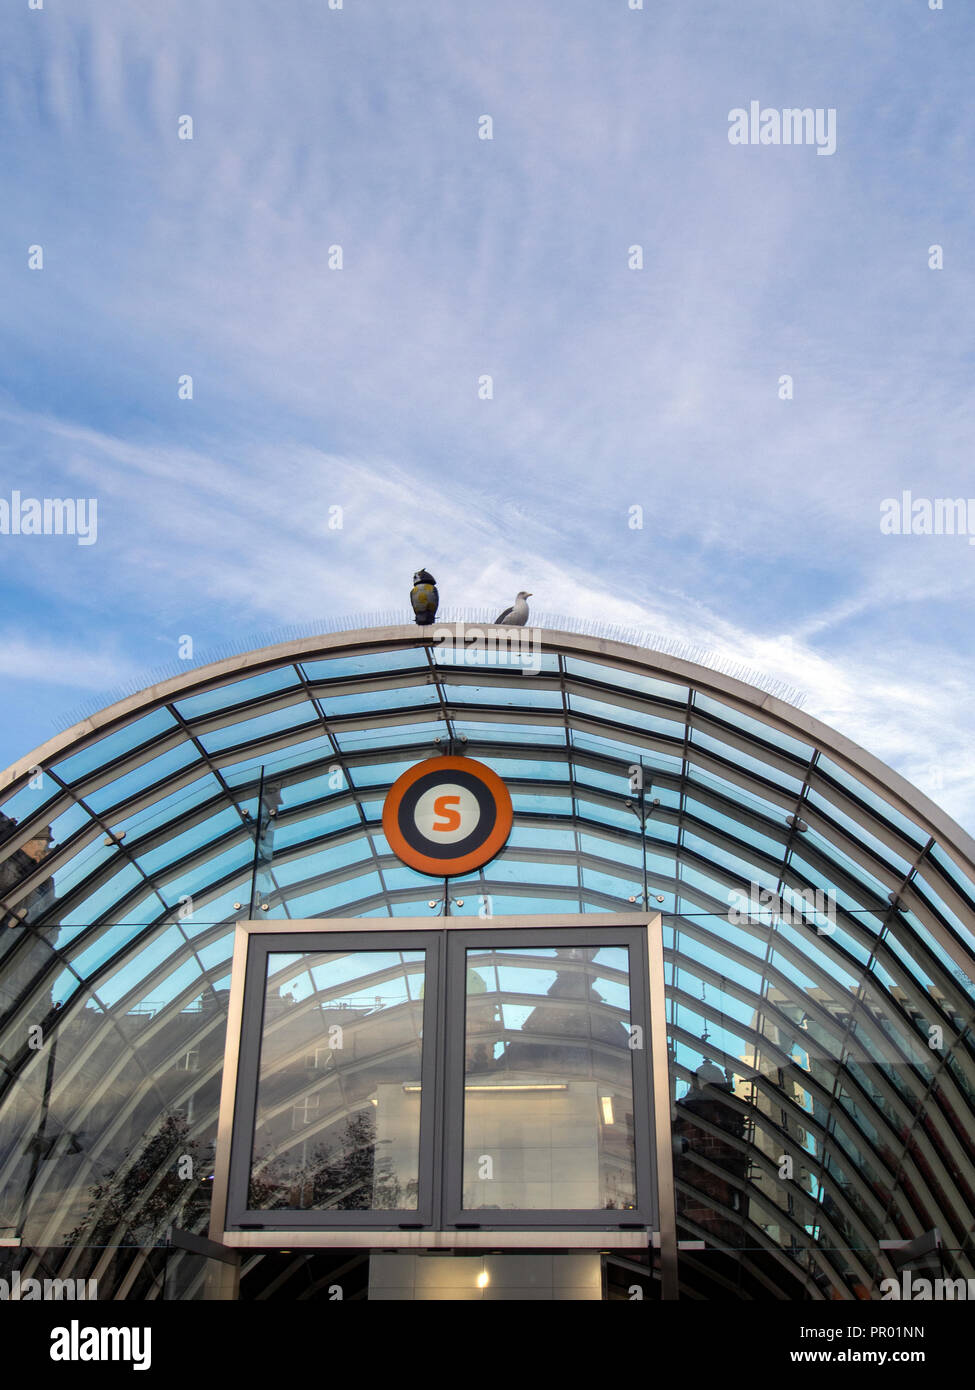 GLASGOW, SCOTLAND - SEPTEMBER 27th 2018: A wooden owl on top of St Enoch subway station entrance. - Stock Image